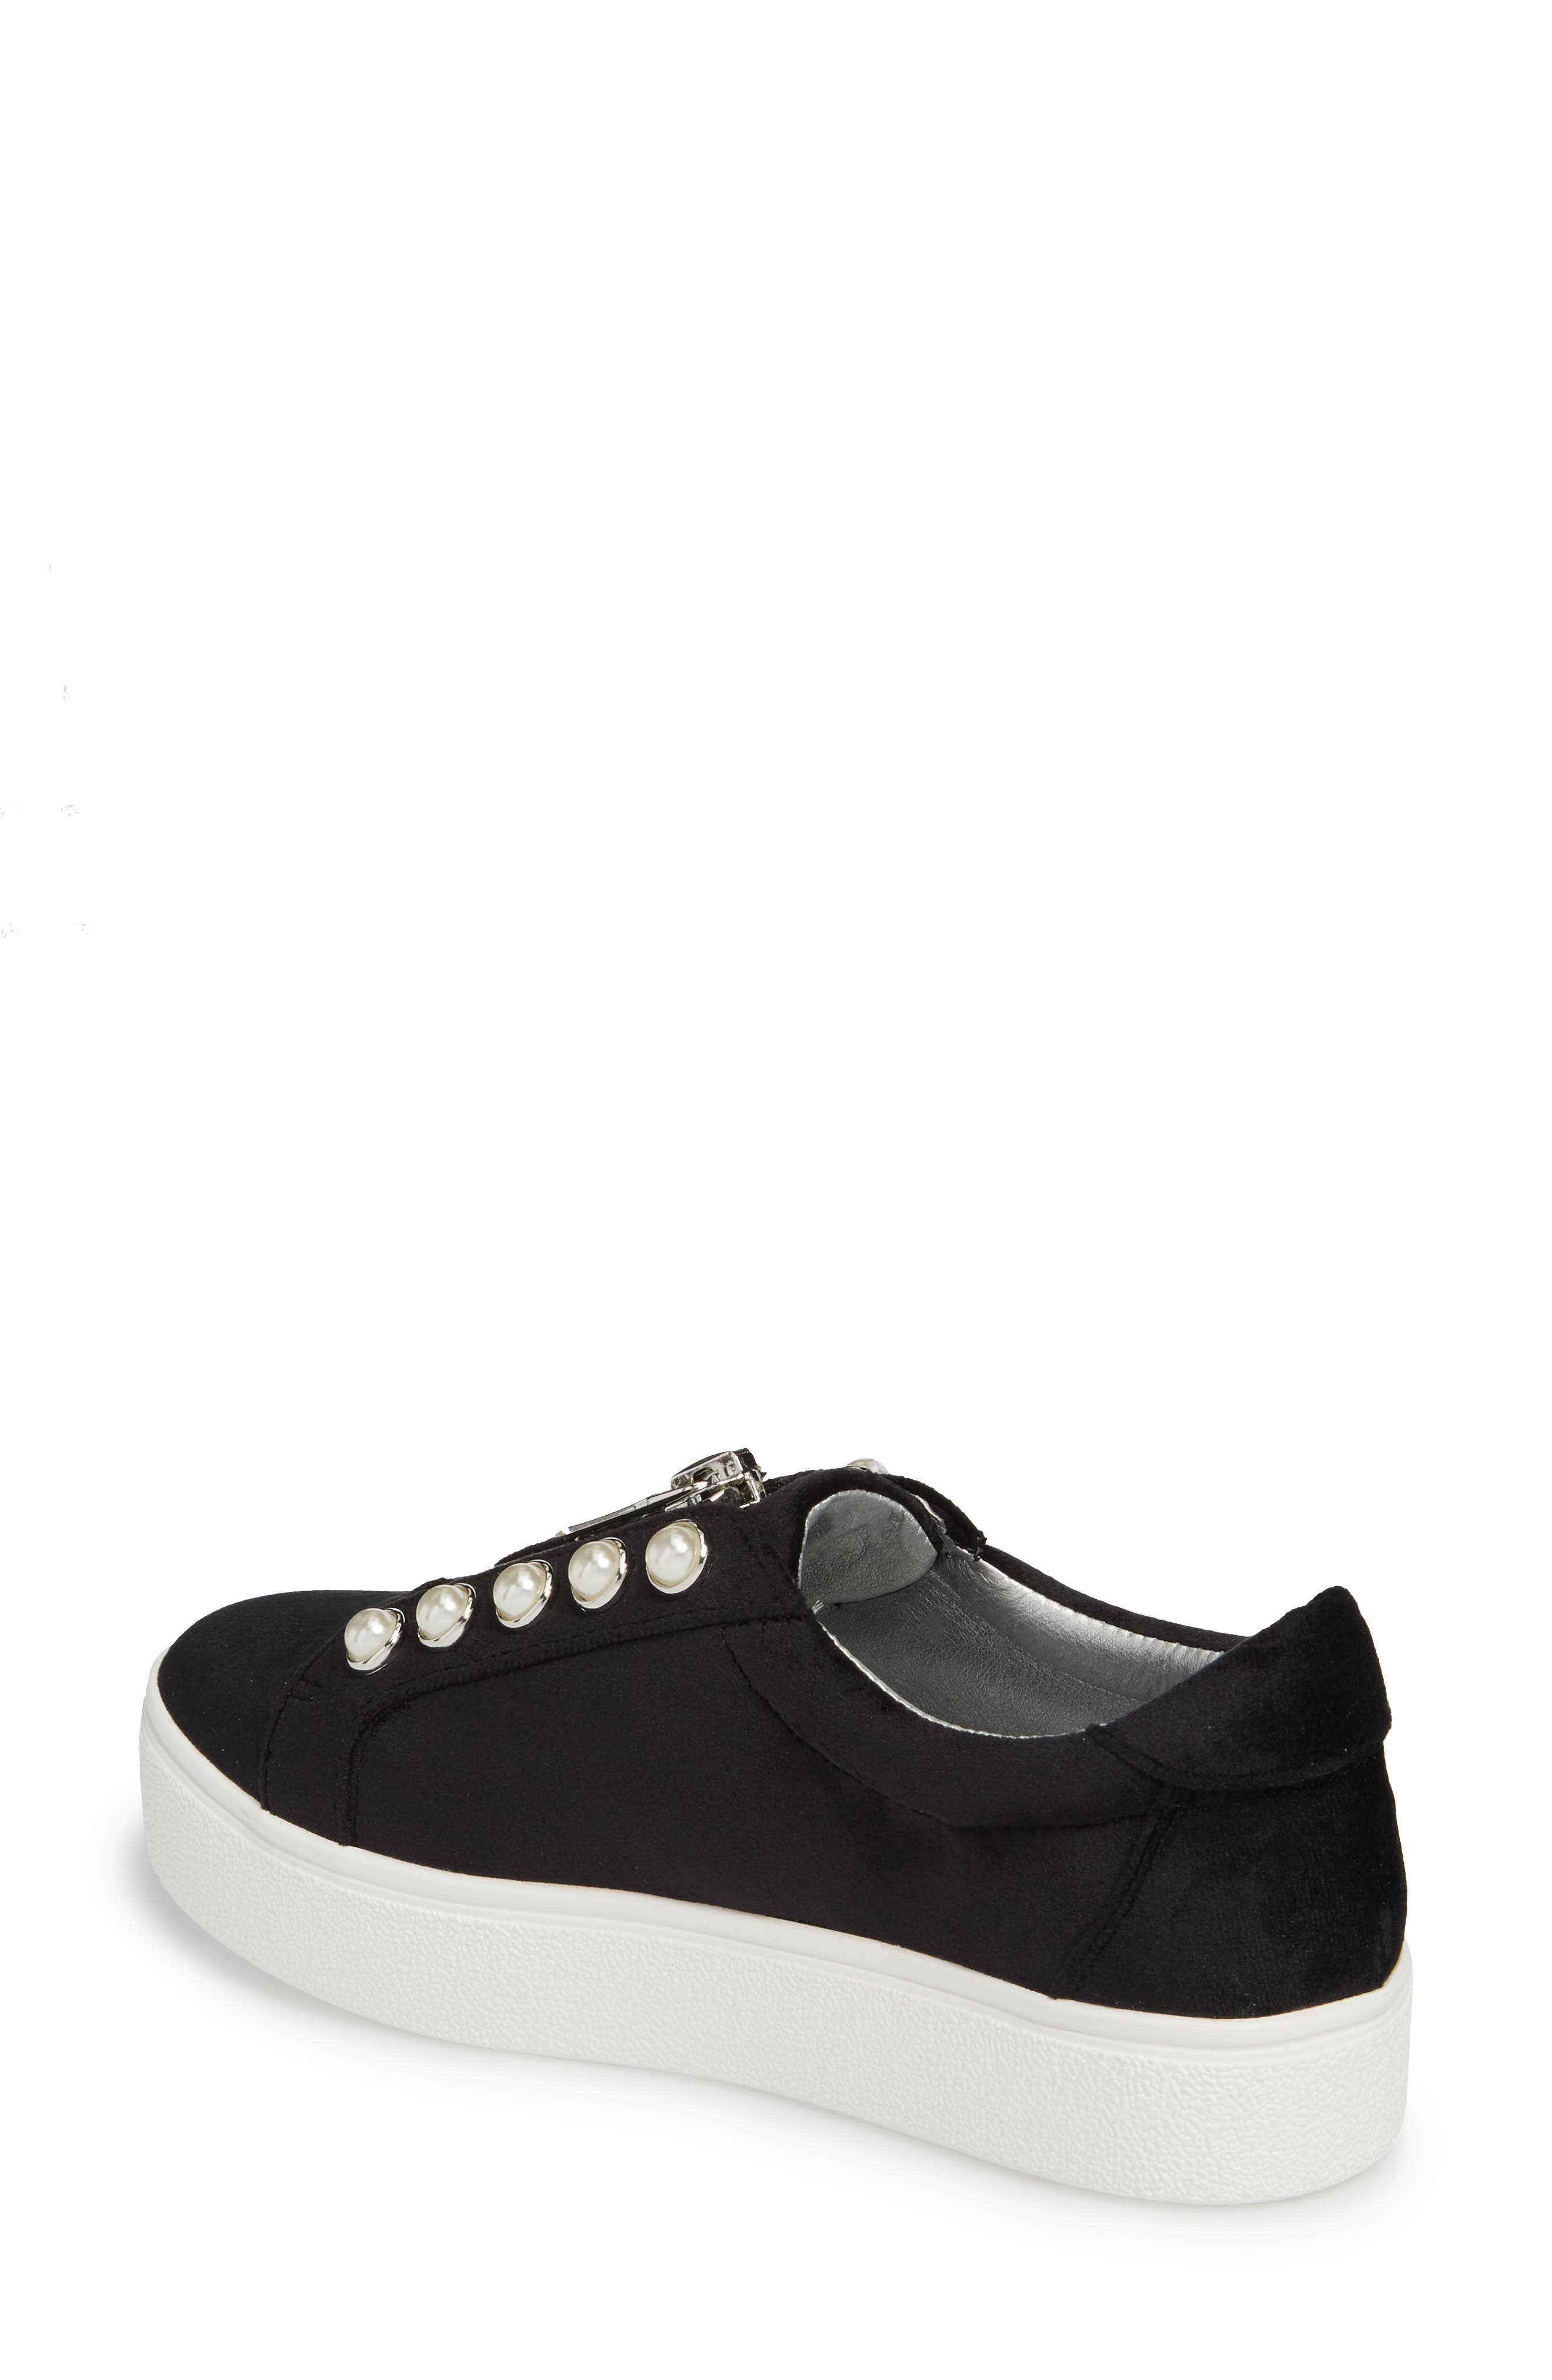 Lynn Embellished Platform Sneaker,                             Alternate thumbnail 2, color,                             001